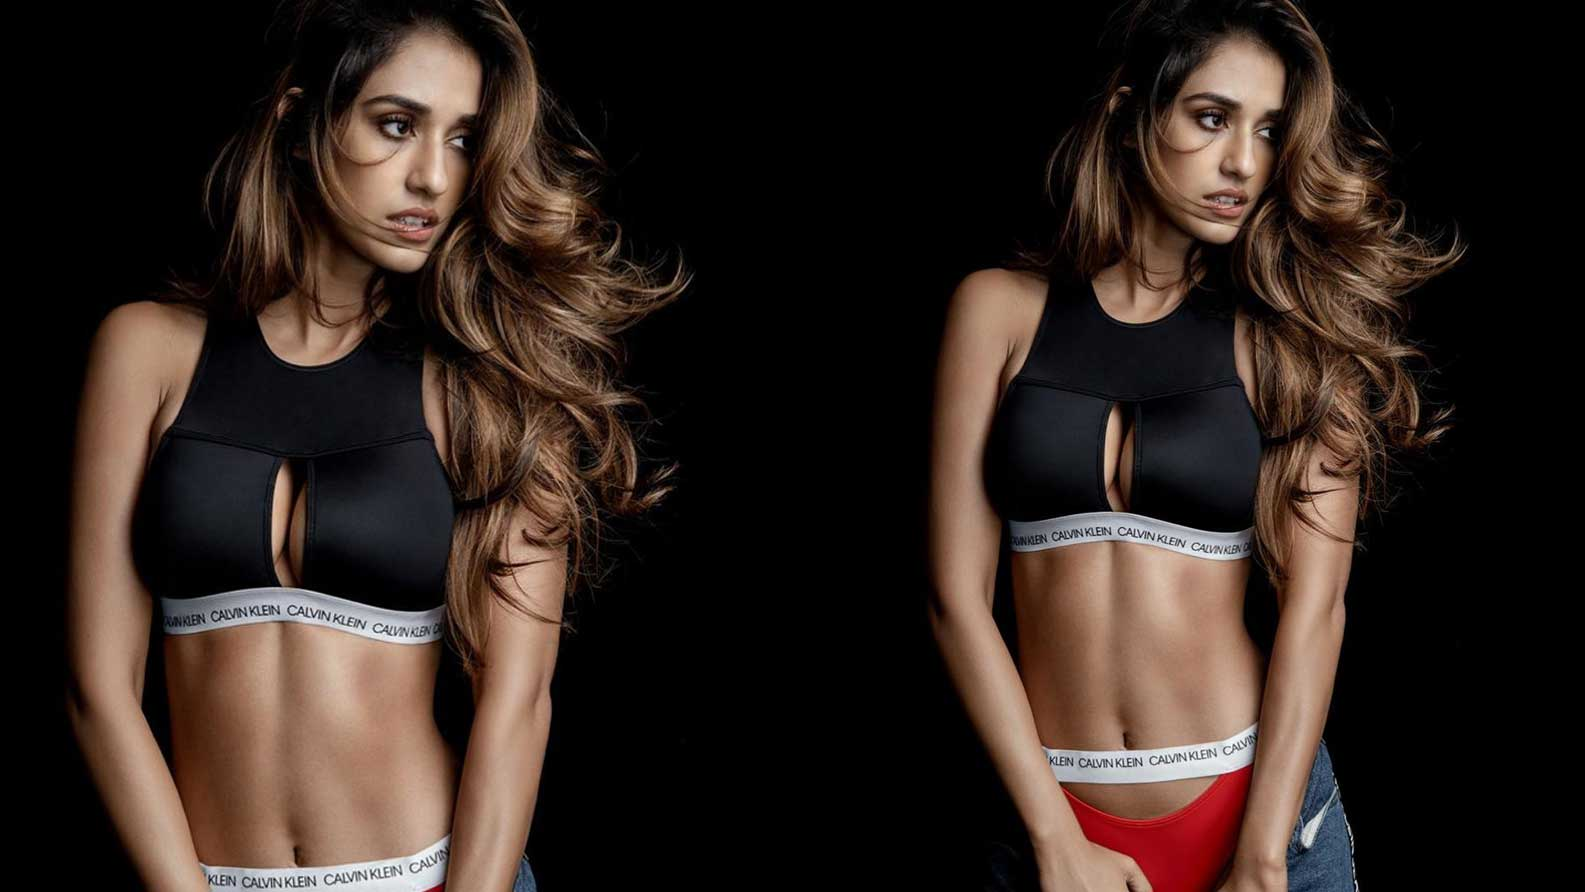 Disha Patani raises mercury levels as she flaunts her washboard abs in this innerwear